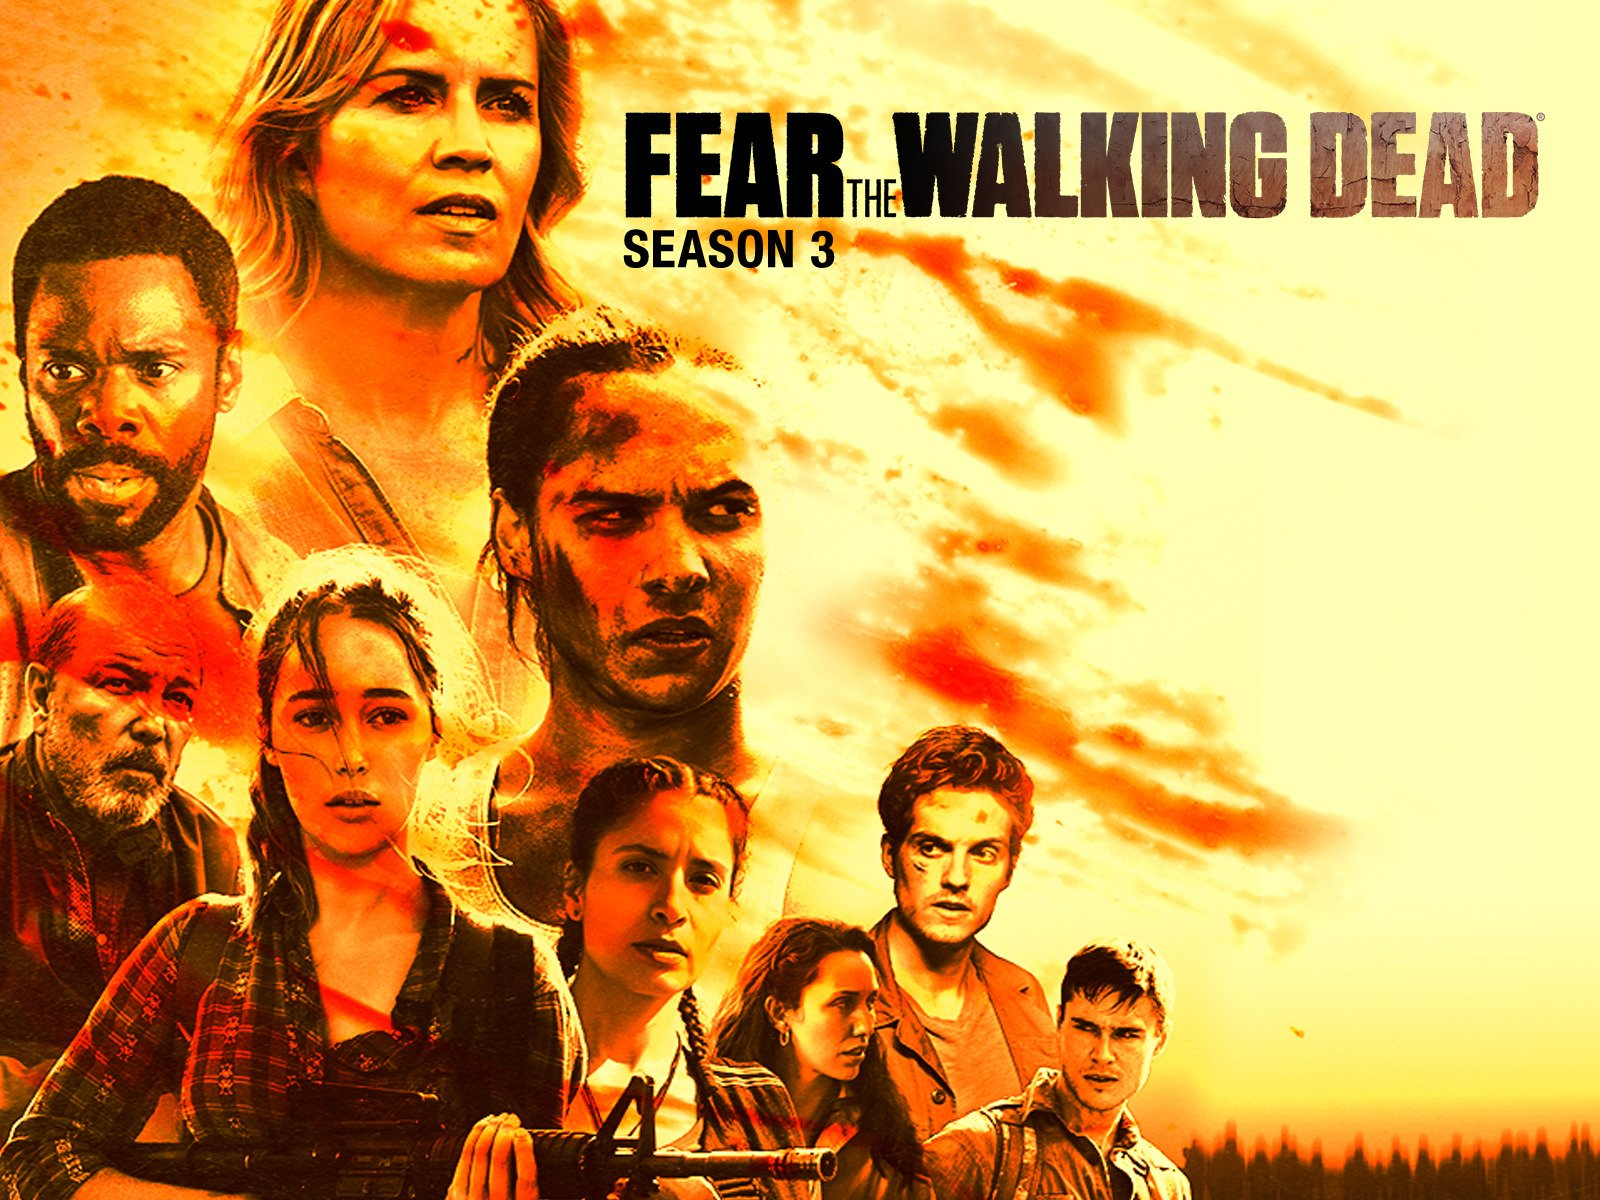 Amazon.co.uk: Watch Fear the Walking Dead - Season 3 | Prime Video